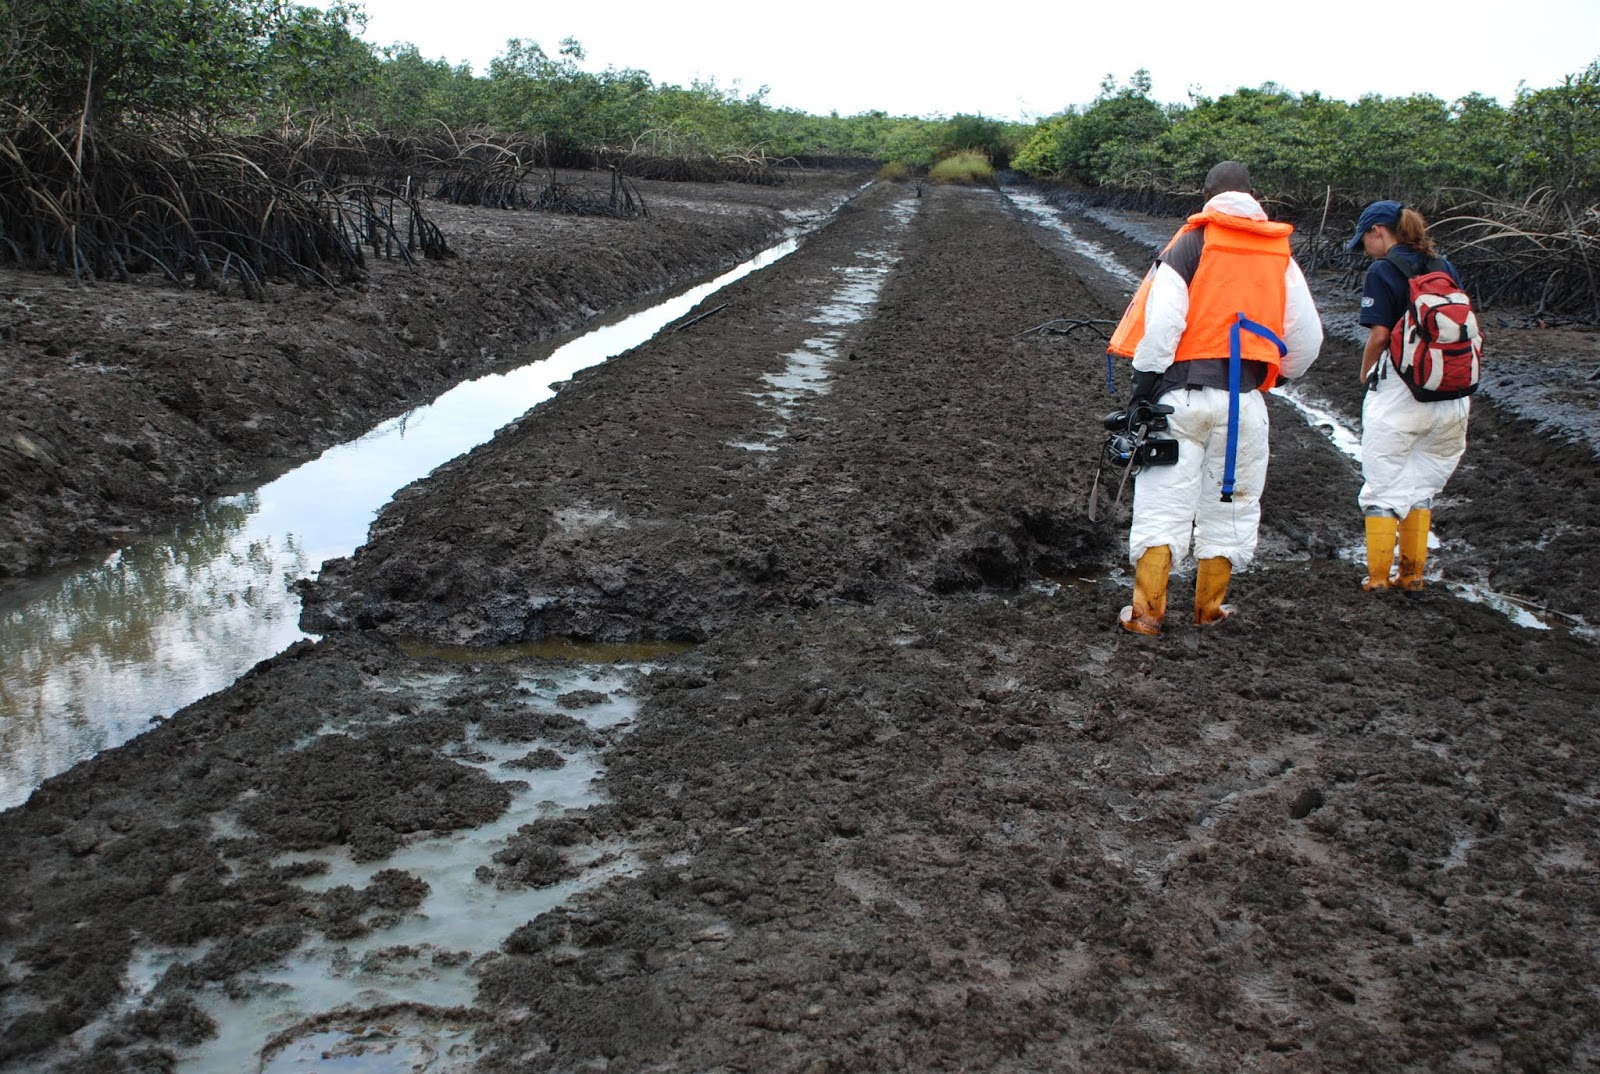 The Federal Government on Wednesday opened a fresh bid to select contractors to provide portable water in oil spill impacted Ogoni communities in Rivers. Dr Marvin Dekil, the Project Coordinator, Hydrocarbon Pollution Remediation Project (HYPREP) said at the opening of the bid in Port Harcourt that the Project was initiative of the UN Environment Programme […]